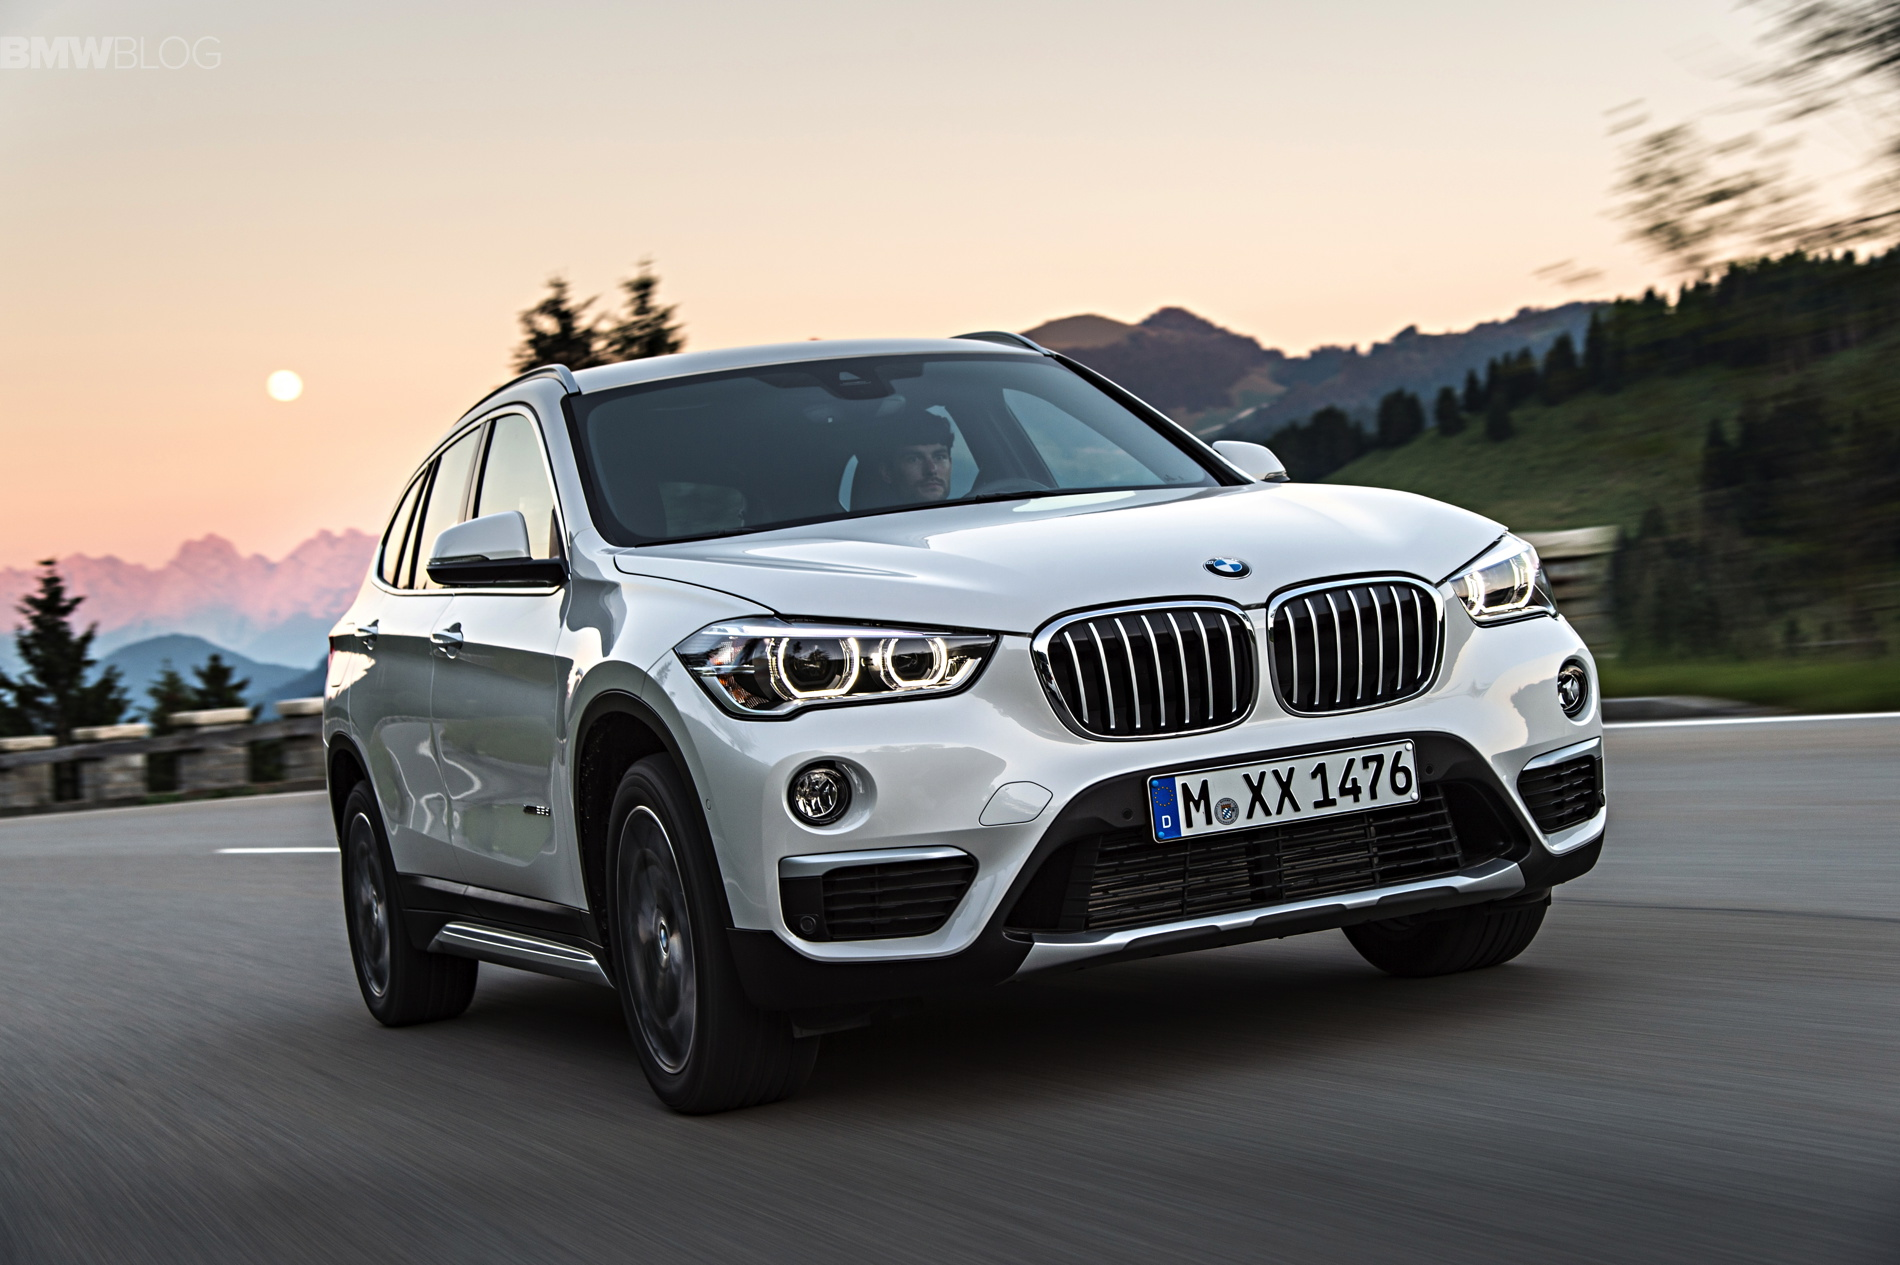 2016 Bmw X1 Online Configurator Now On Bmwusa Com